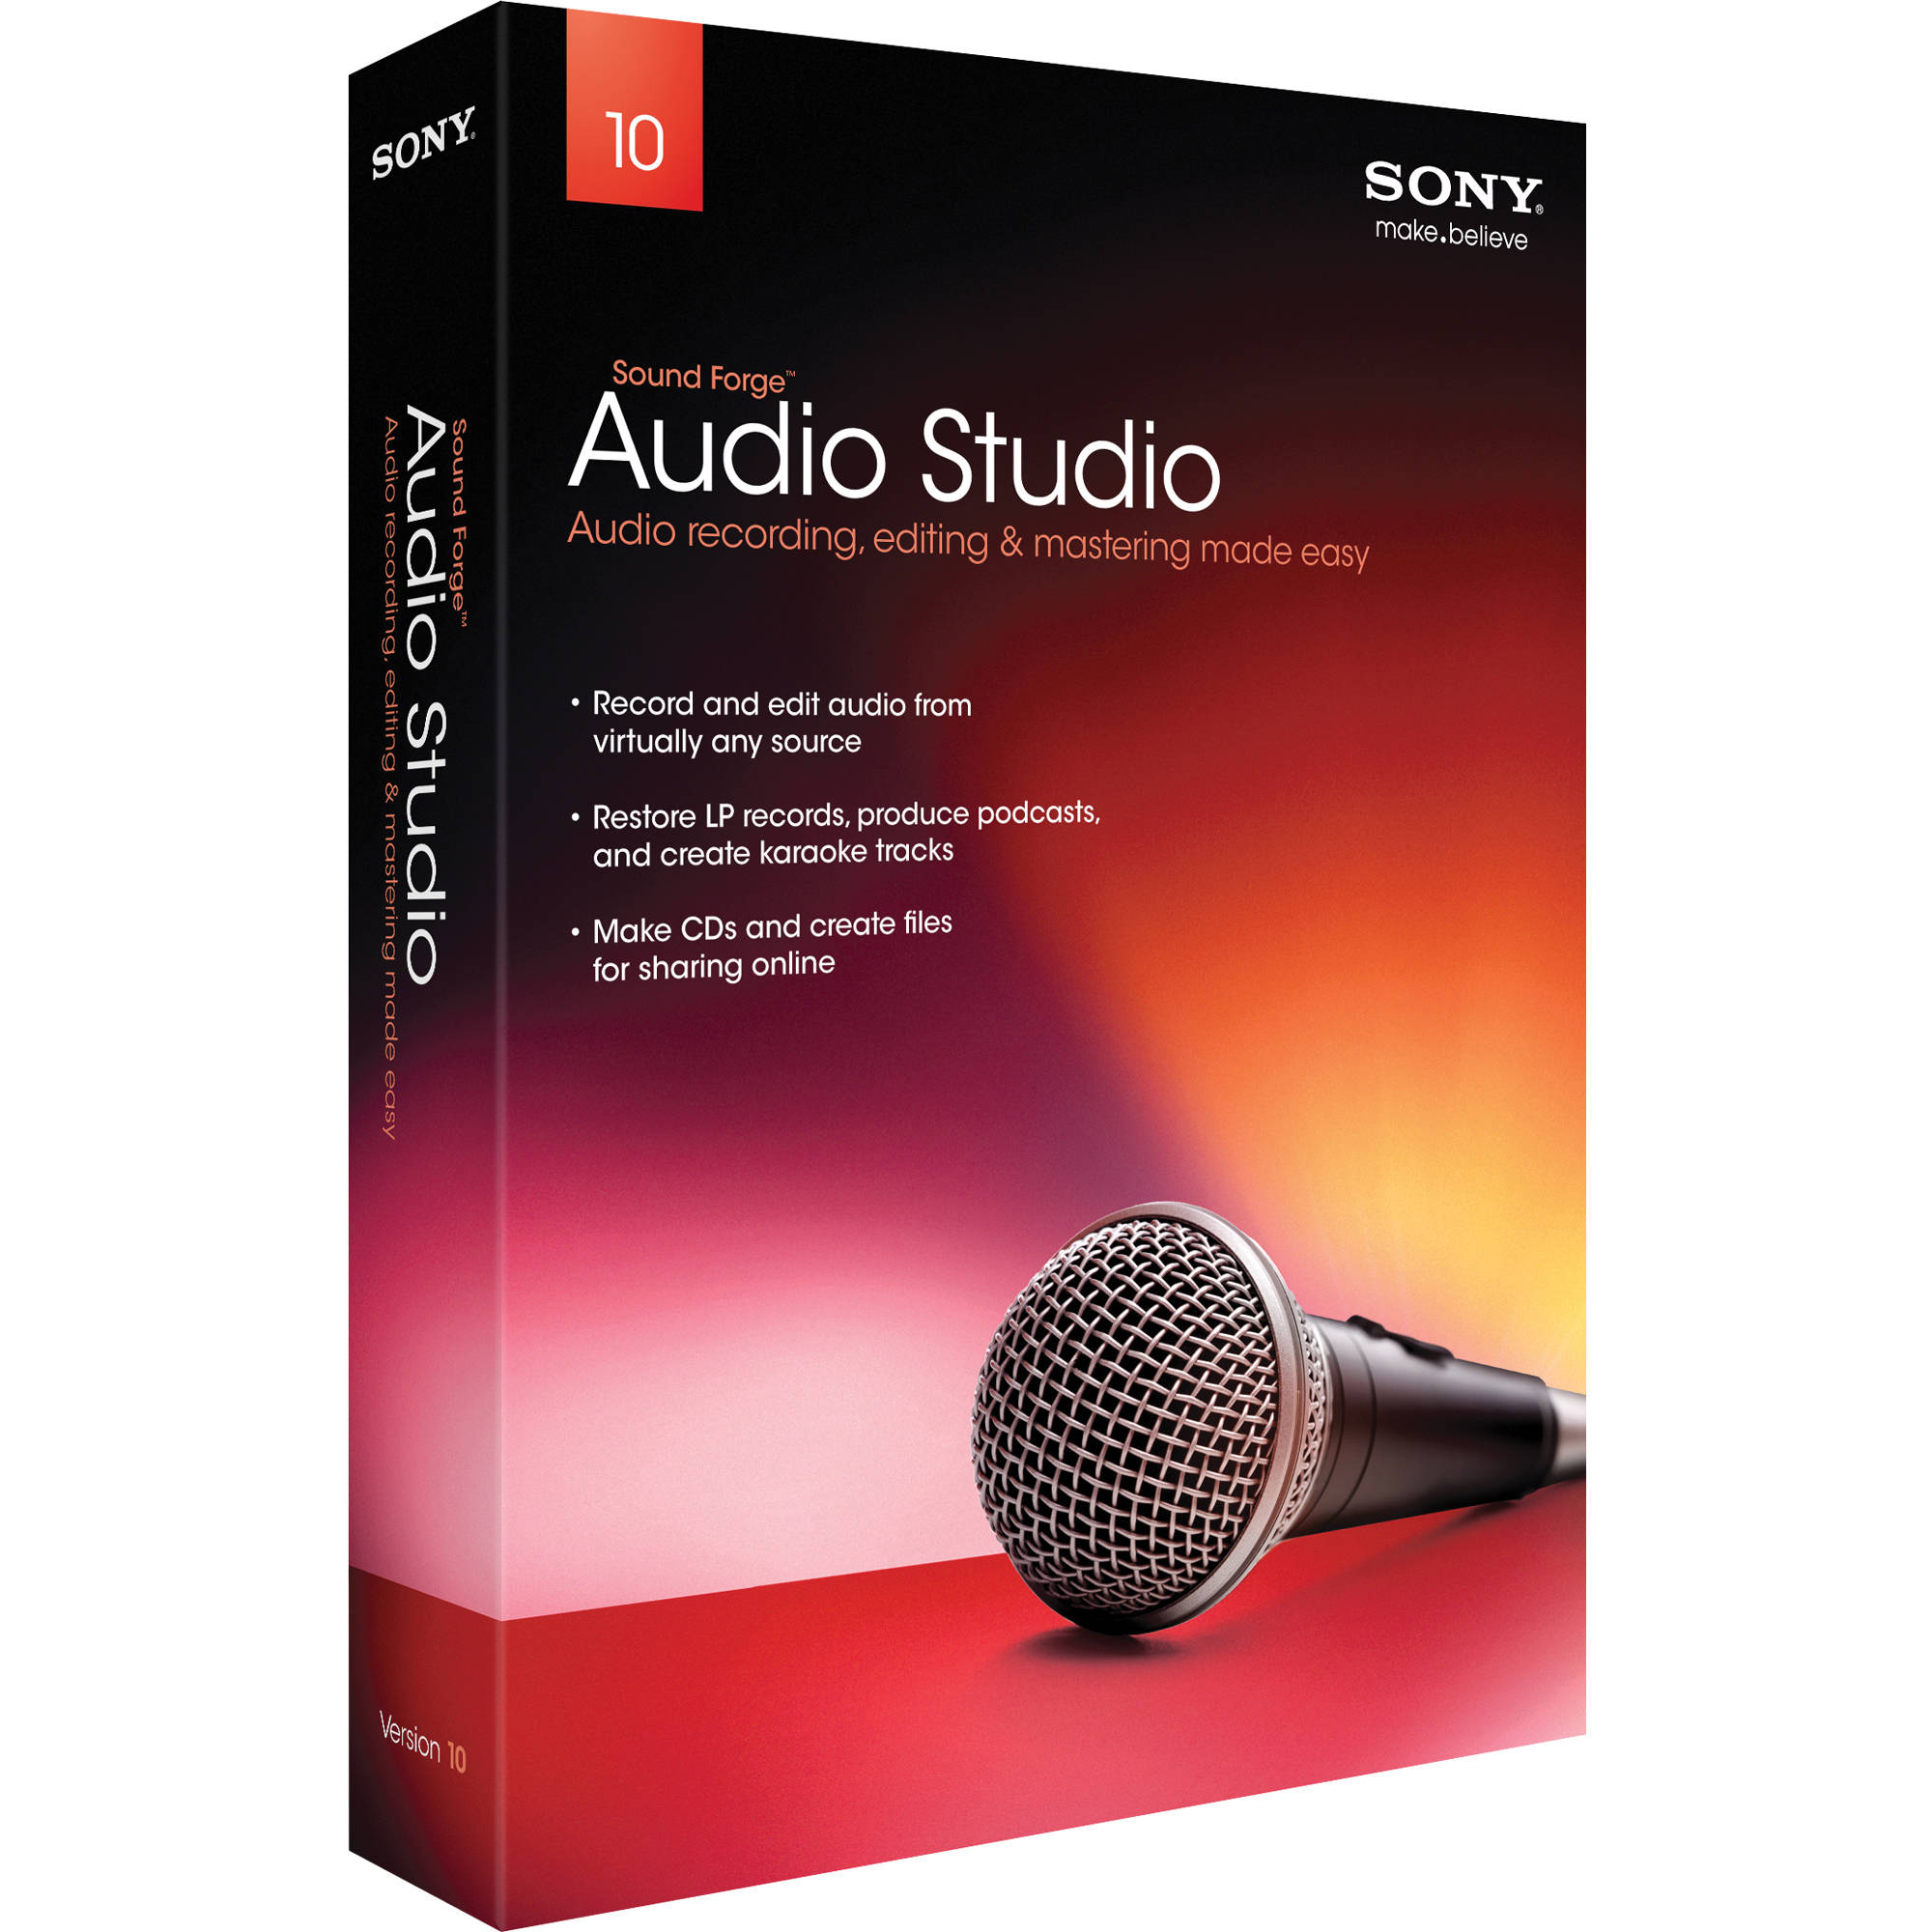 Audio and Video Production my writing expert reviews